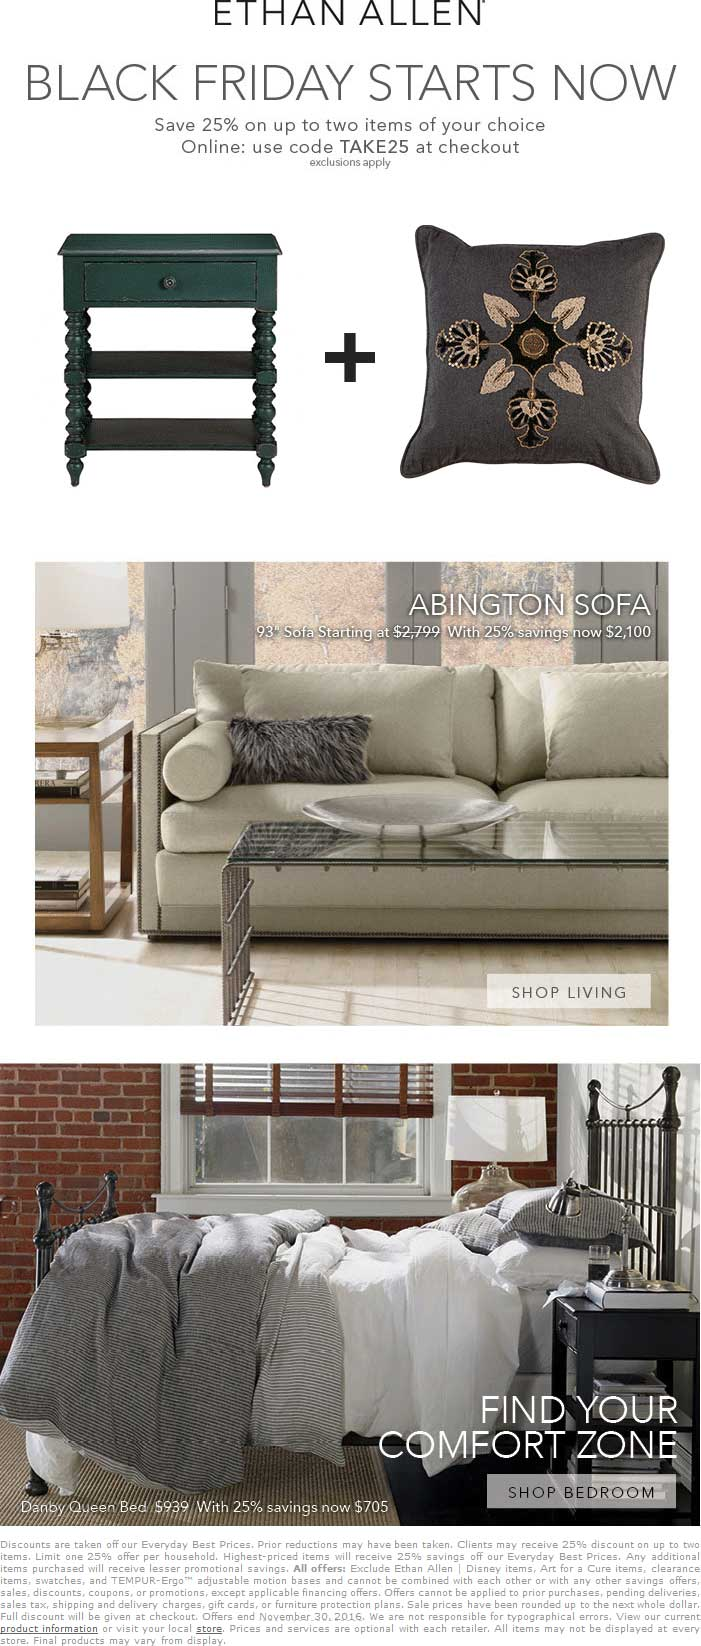 EthanAllen.com Promo Coupon 25% off a couple items at Ethan Allen, or online via promo code TAKE25